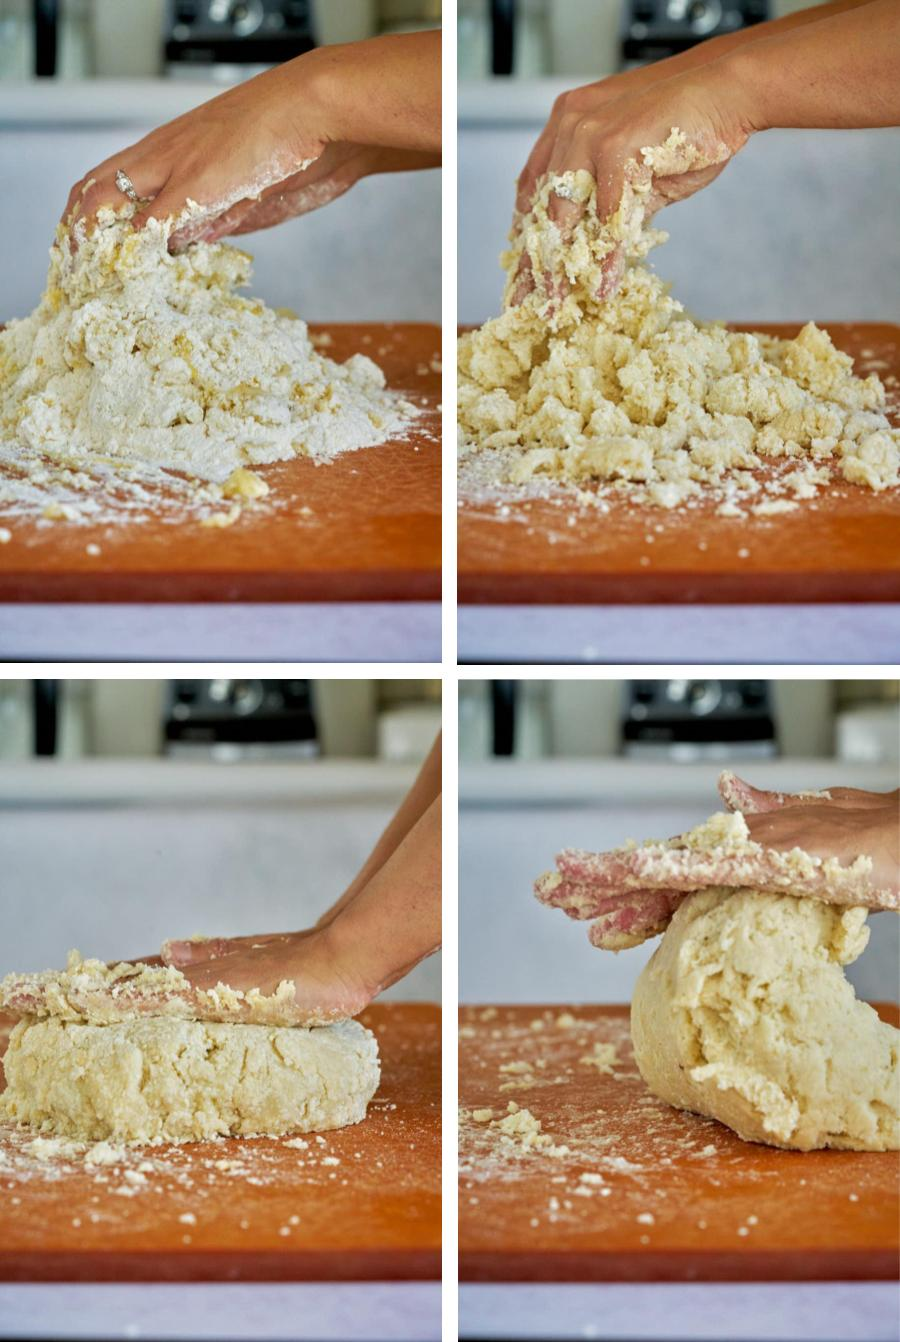 Hands mixing together dough.